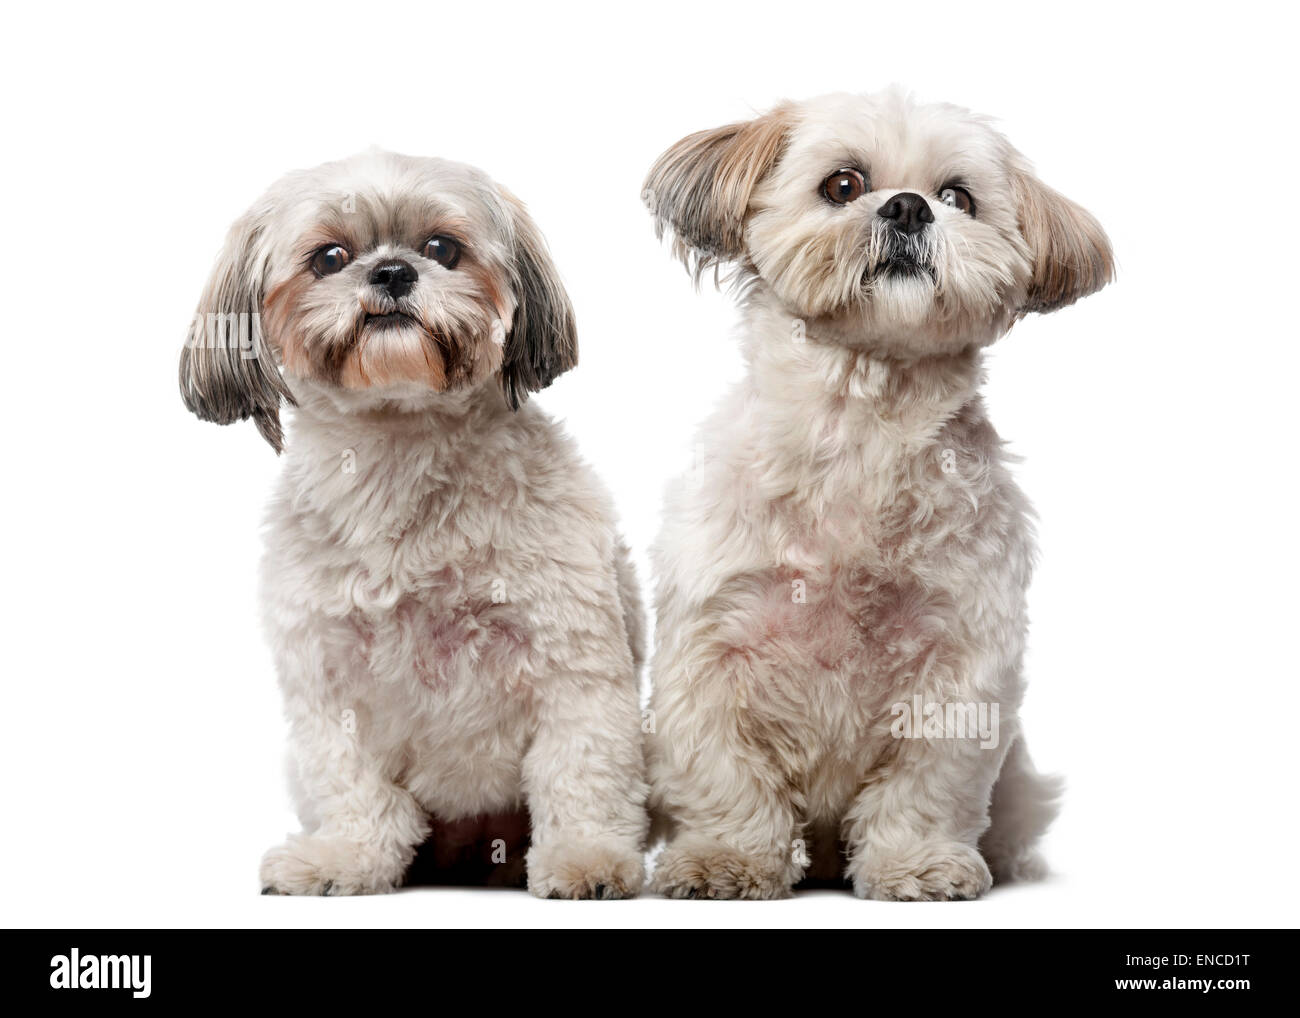 Two Shih Tzus in front of a white background - Stock Image